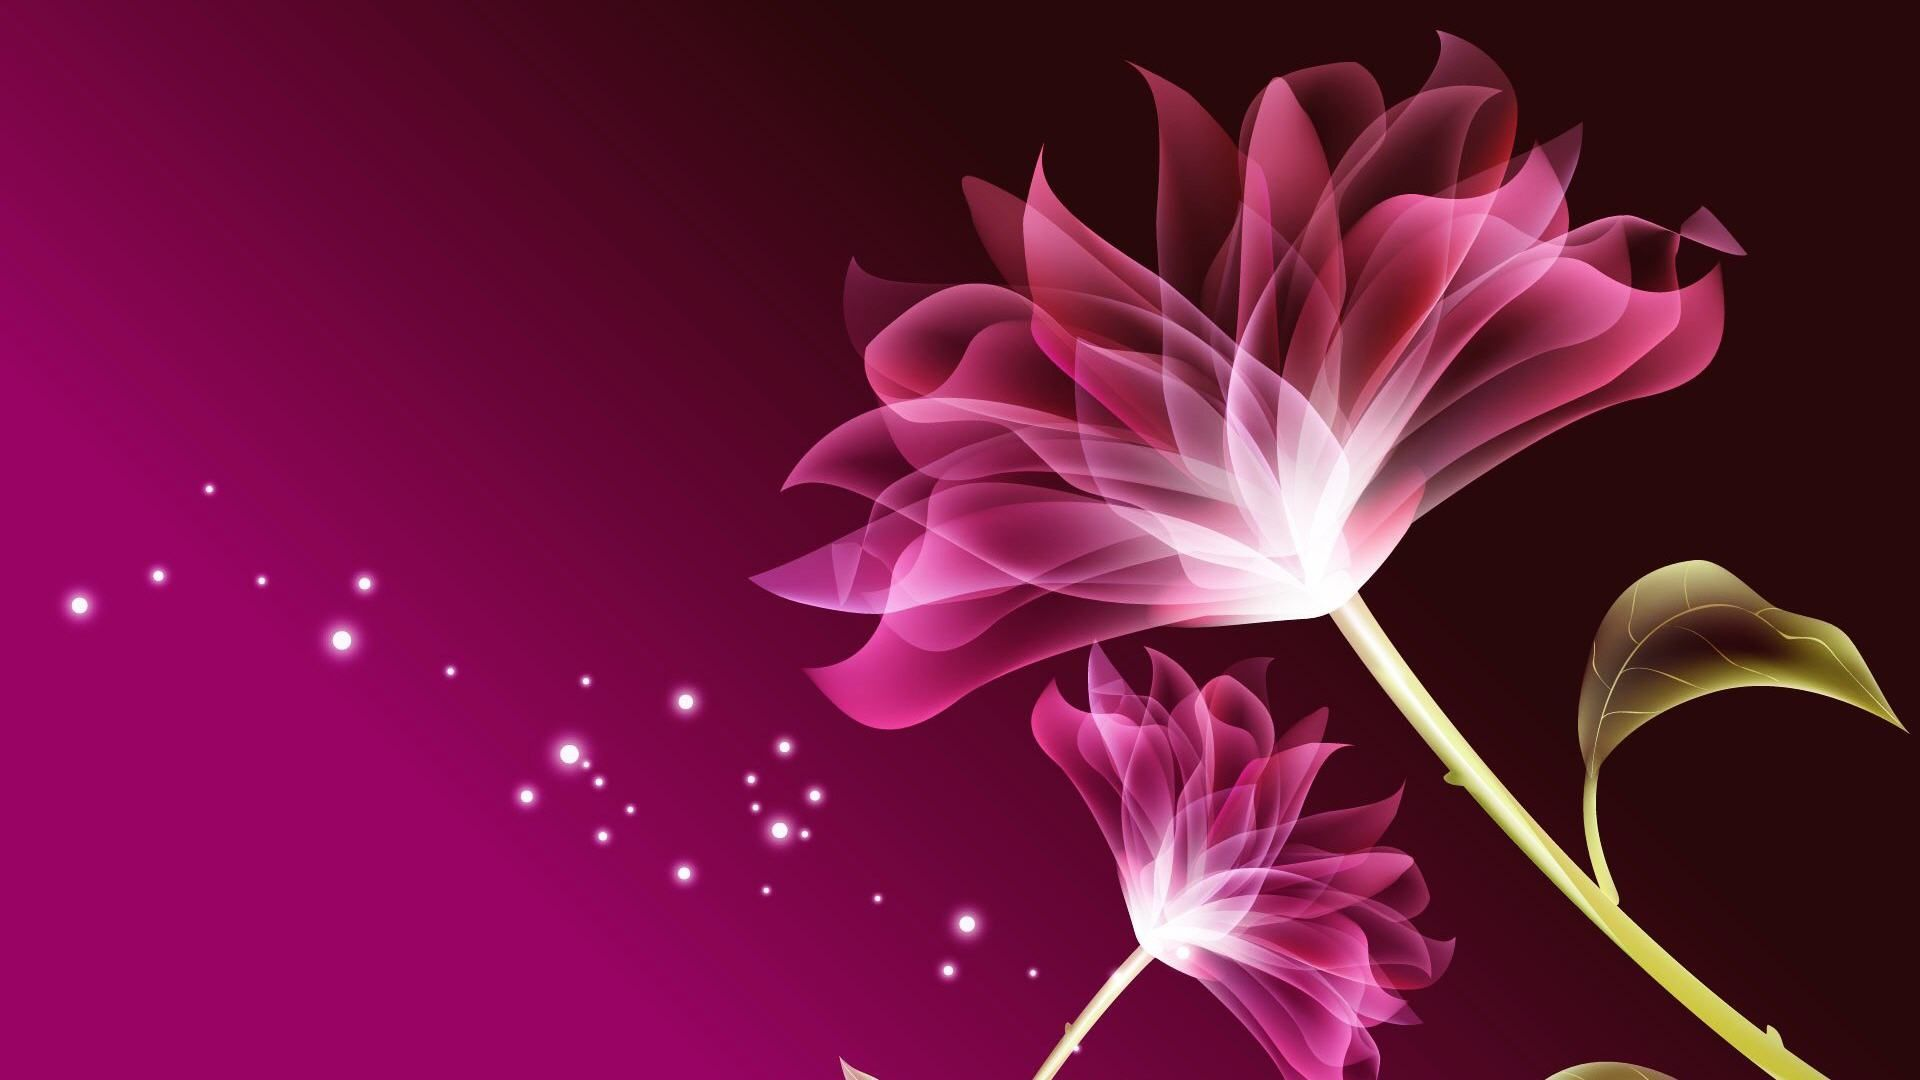 3d pink beautiful flower wallpaper | pretty flowerssadiq inuwa